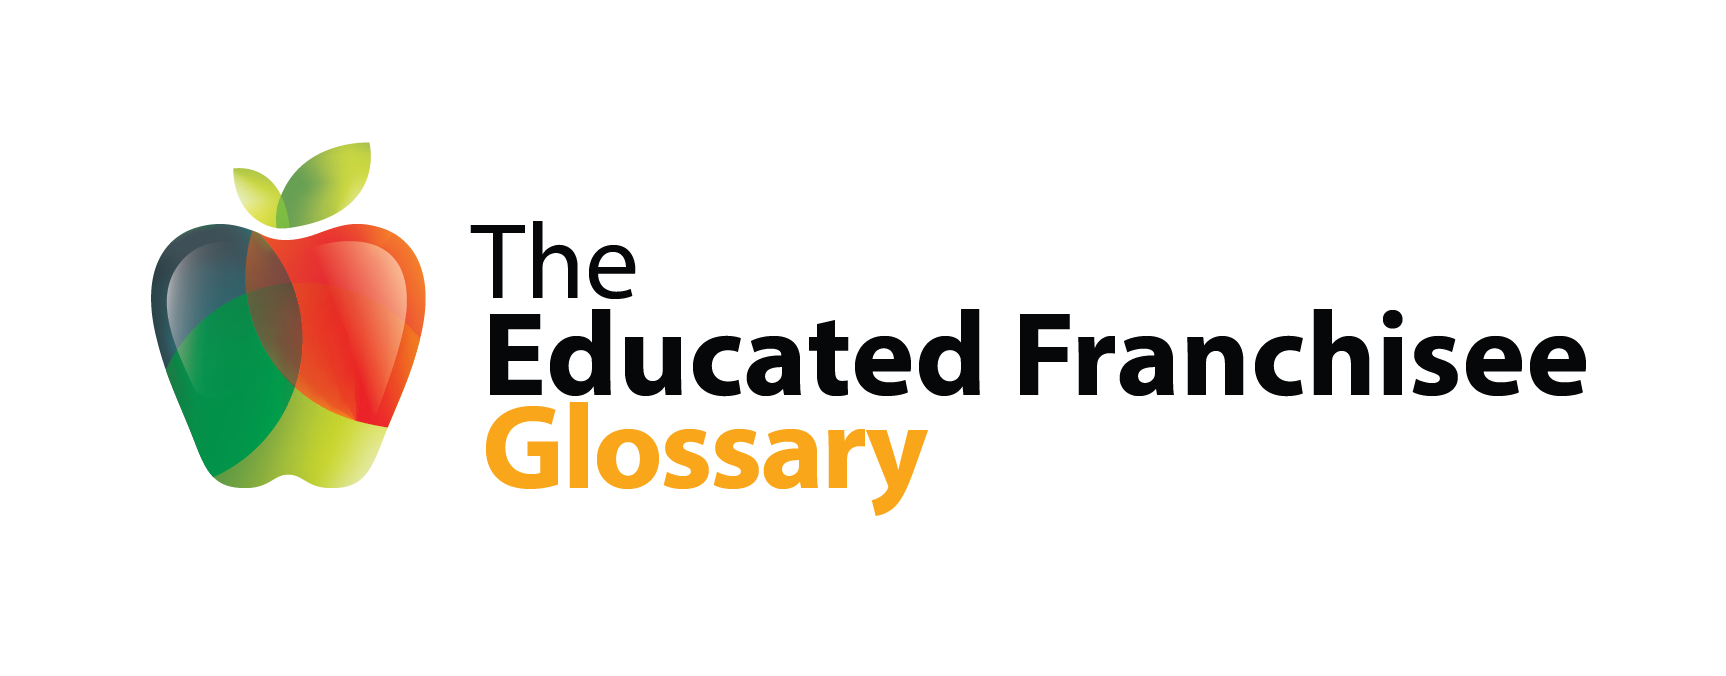 https://educatedfranchisee.com/wp-content/uploads/2017/07/EF_Glossary.png